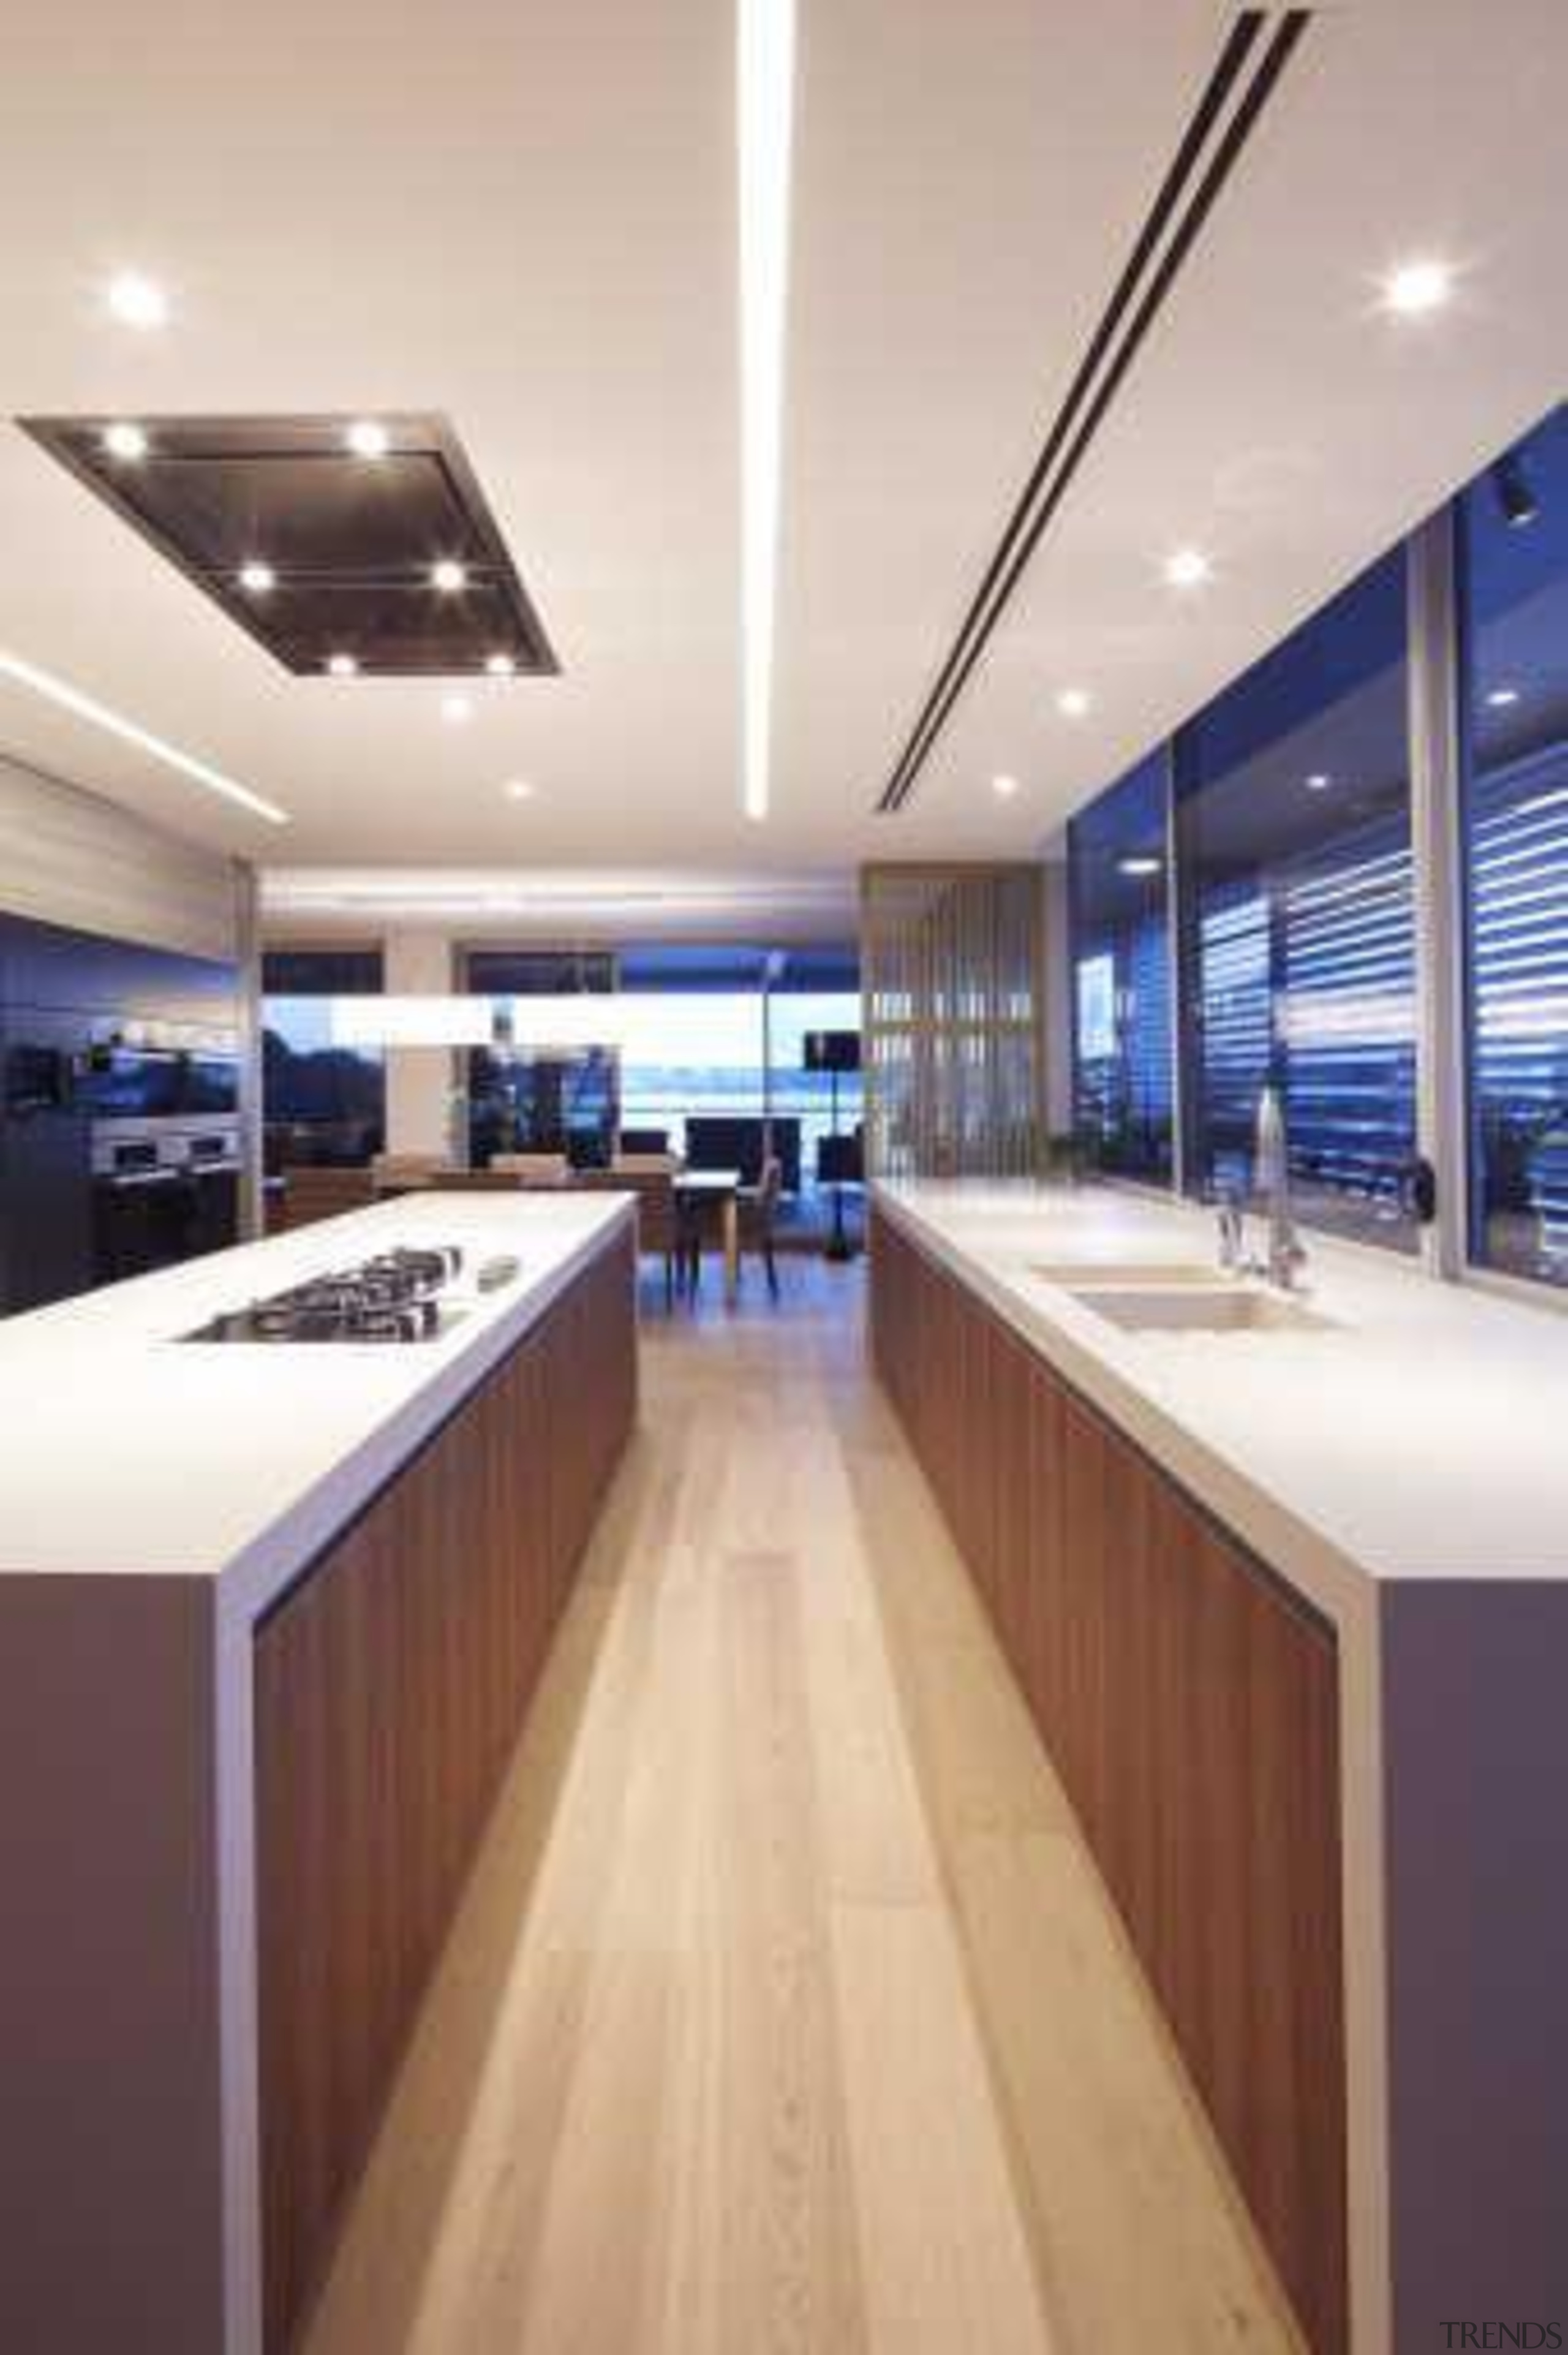 In this contemporary apartment renovation, woodgrain surfaces from ceiling, countertop, floor, interior design, kitchen, yacht, gray